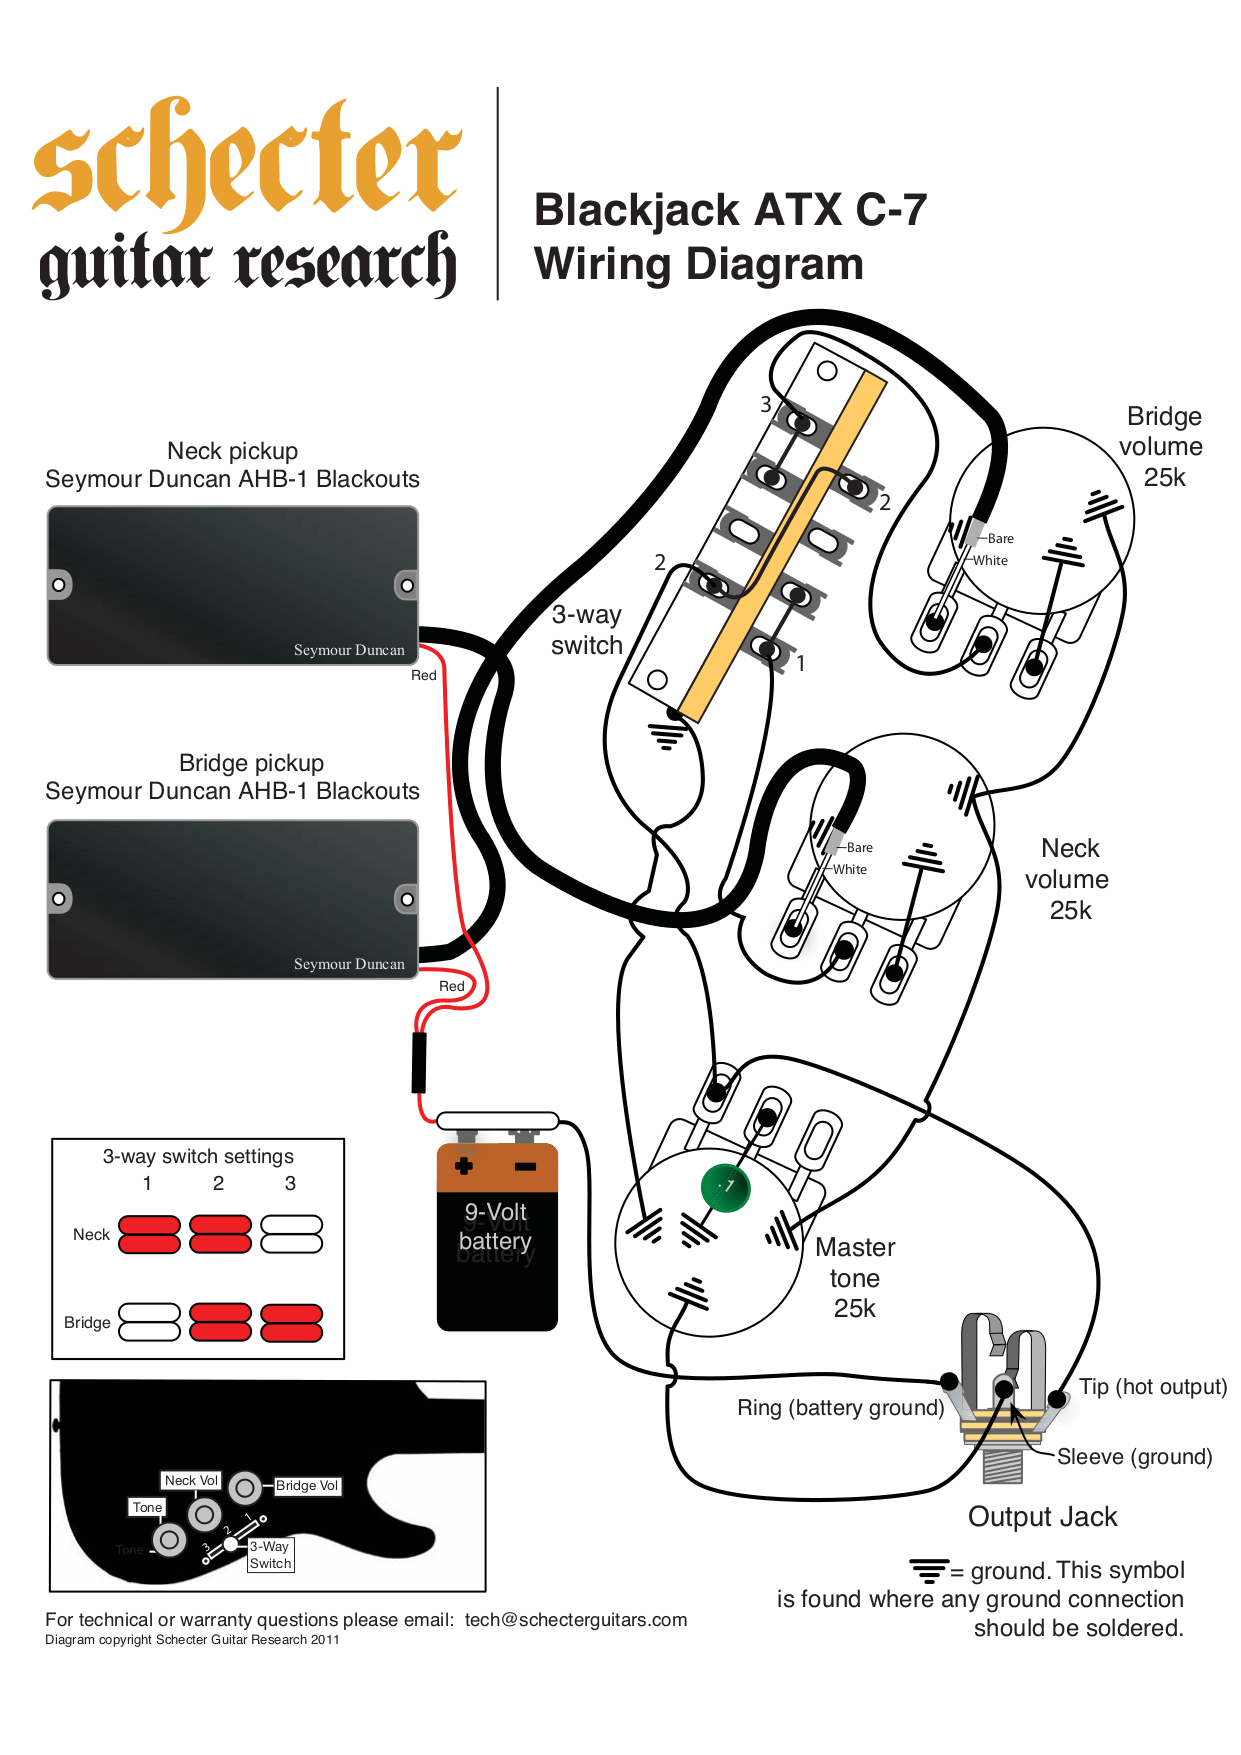 schecter guitars diamond series wiring diagram schecter guitar wiring diagrams poli kobe afcev de  schecter guitar wiring diagrams poli